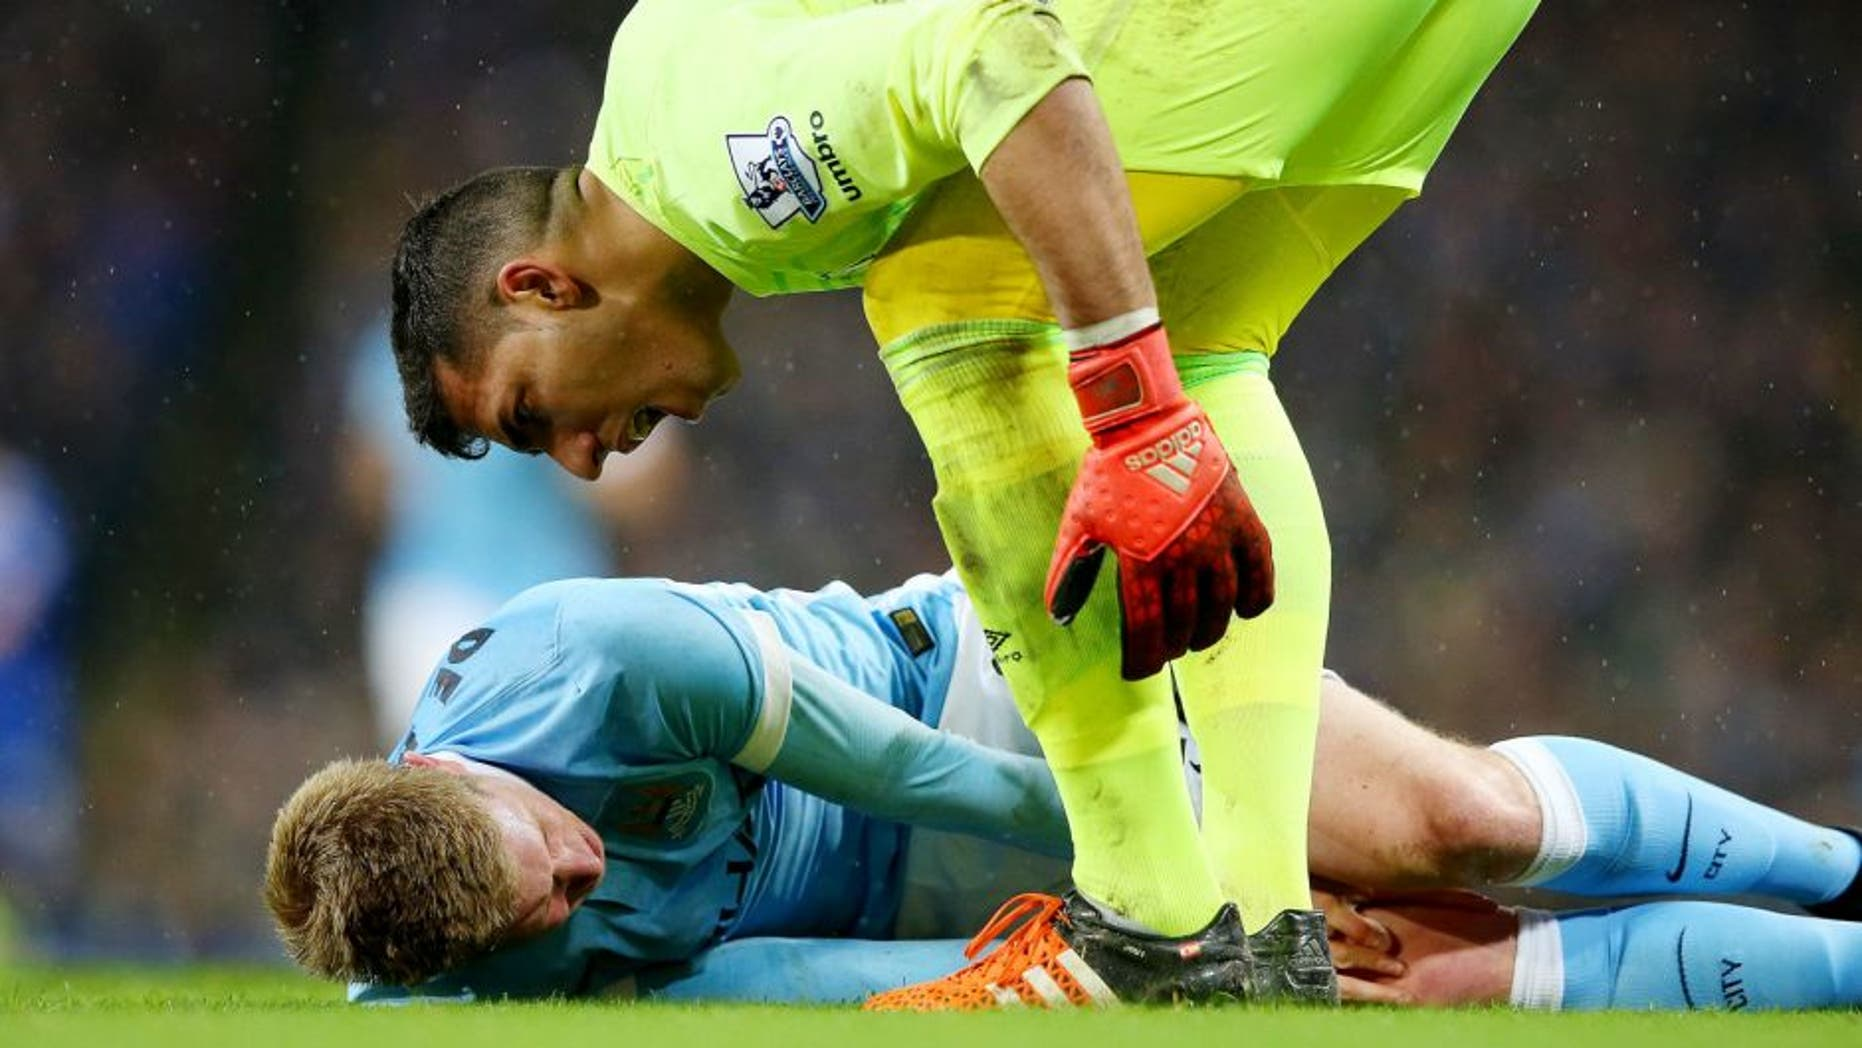 MANCHESTER, ENGLAND - JANUARY 27: Goalkeeper Joel Robles of Everton attempts to assist the injured Kevin De Bruyne of Manchester City during the Capital One Cup Semi Final, second leg match between Manchester City and Everton at the Etihad Stadium on January 27, 2016 in Manchester, England. (Photo by Alex Livesey/Getty Images)